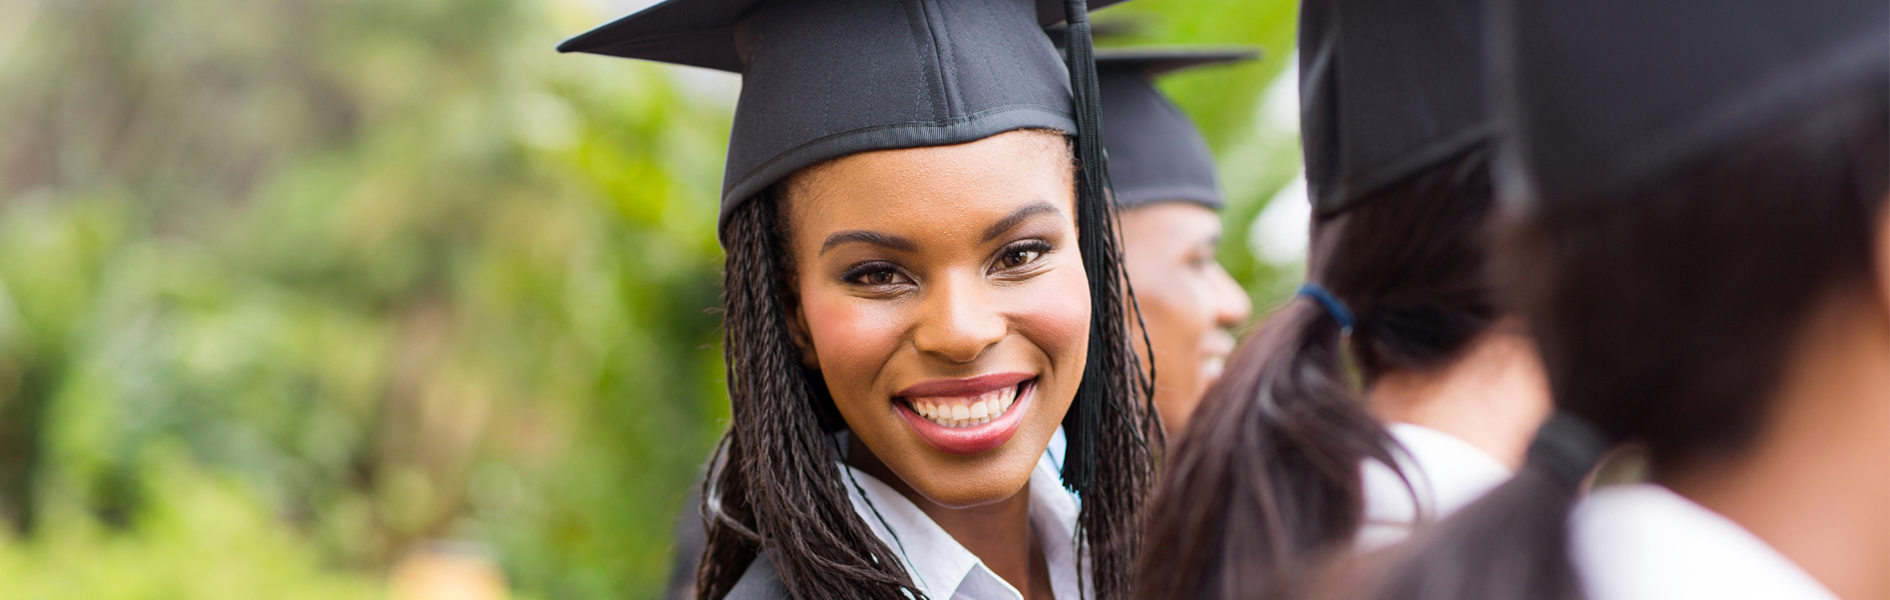 Image of college graduates wearing cap and gown. African American woman turning to face the camera, smiling.